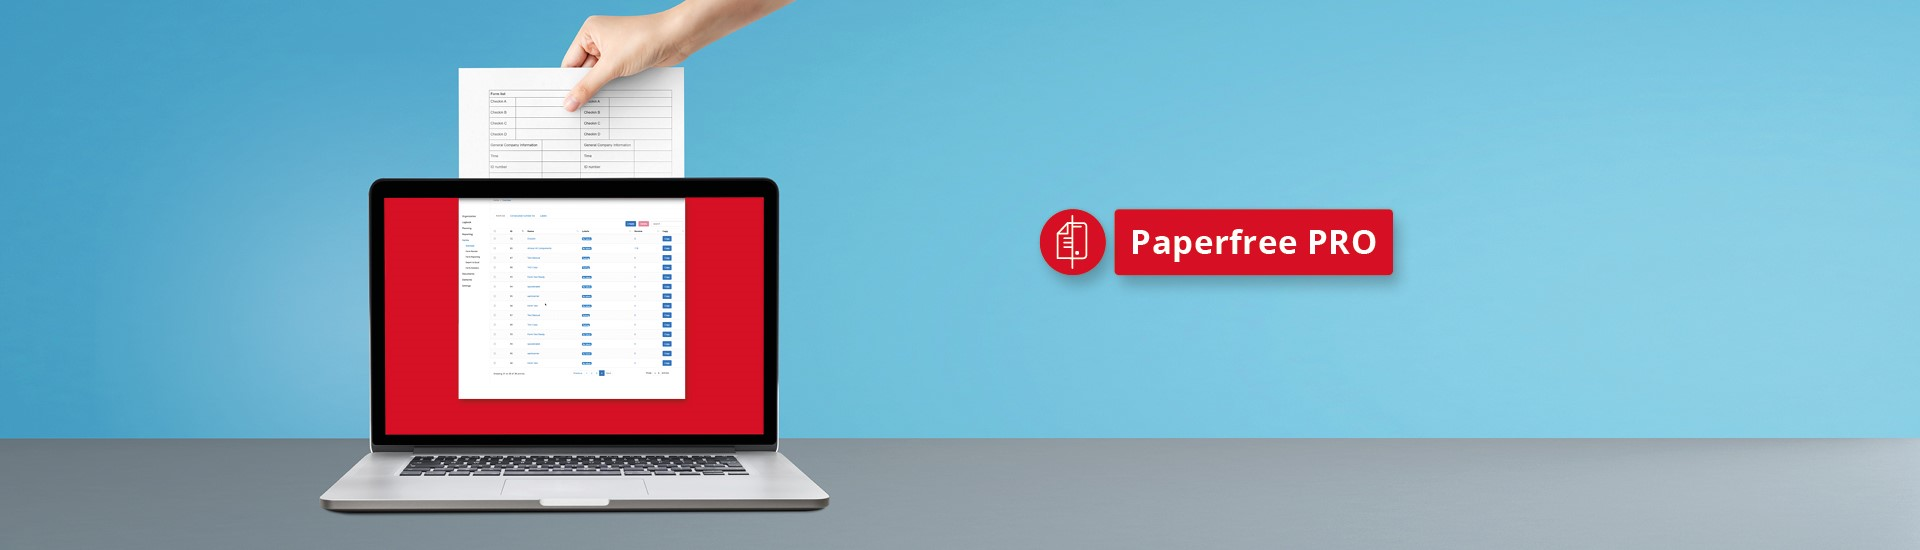 iQonnect_Paperfree_Pro_subpage_header.jpg